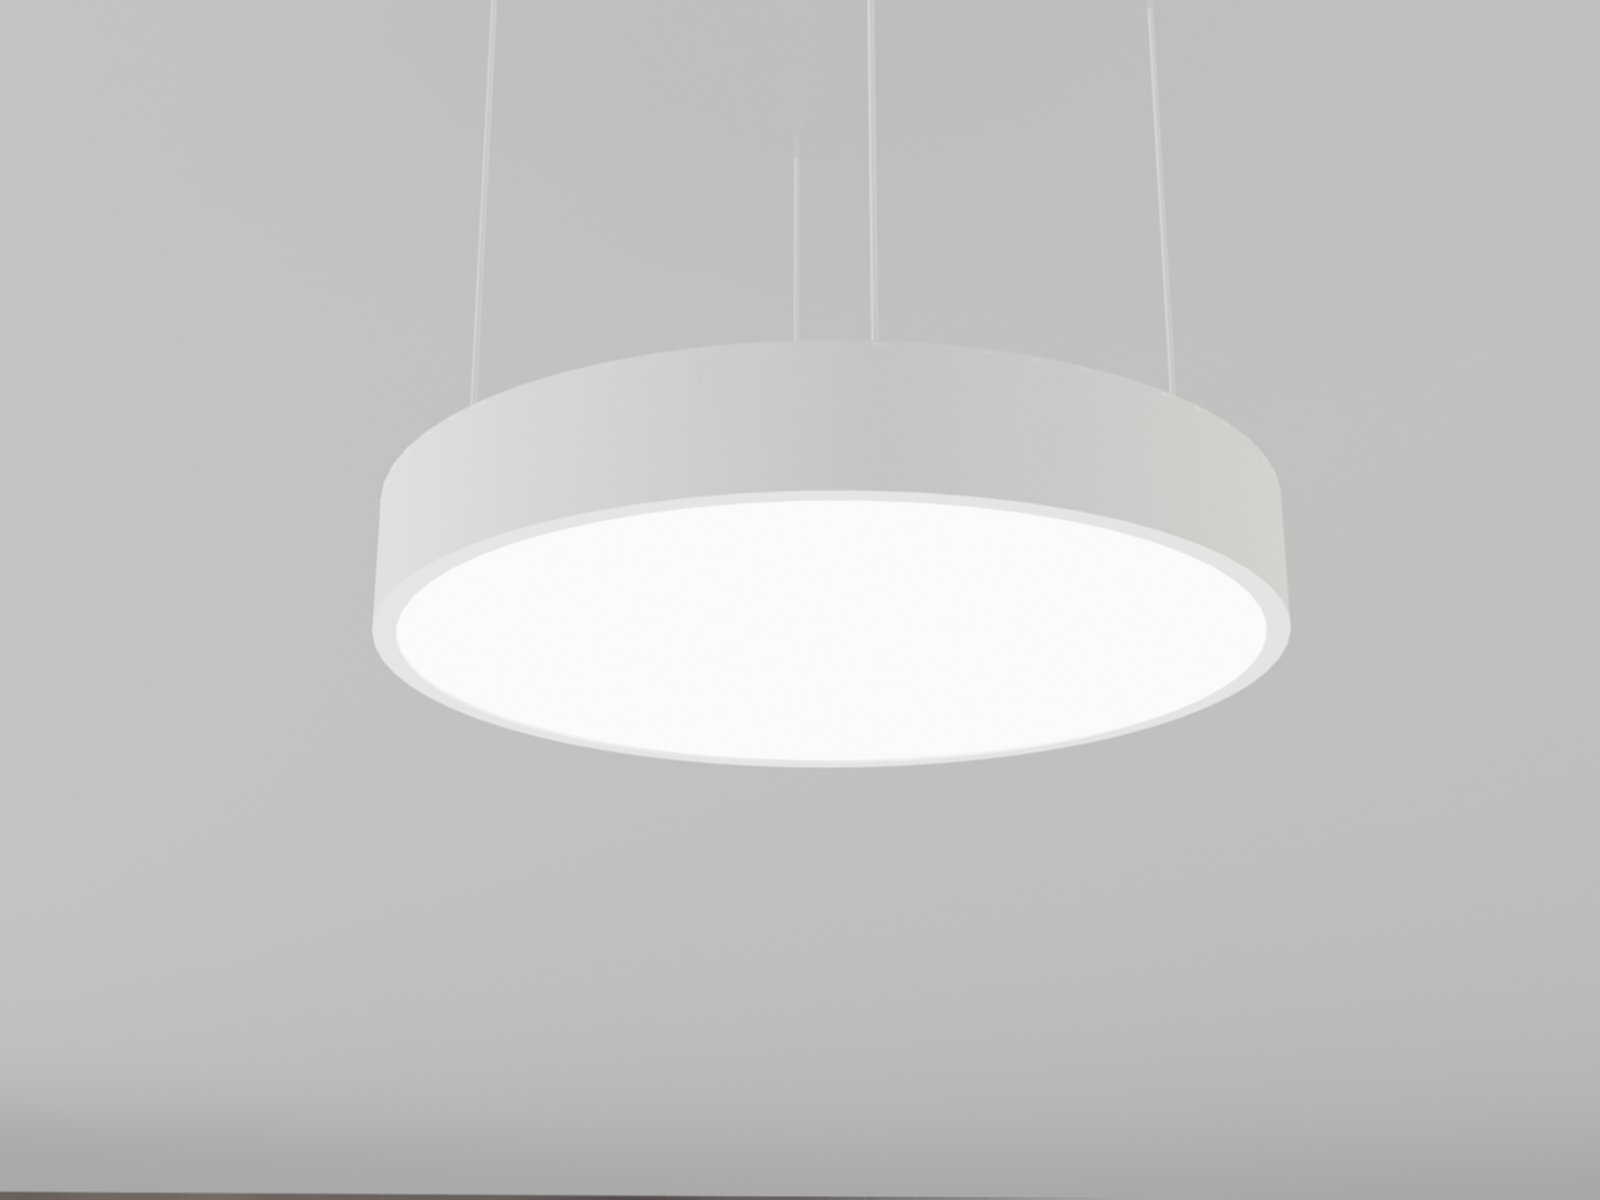 ARCHITECTURAL LIGHT - DISC SERIES